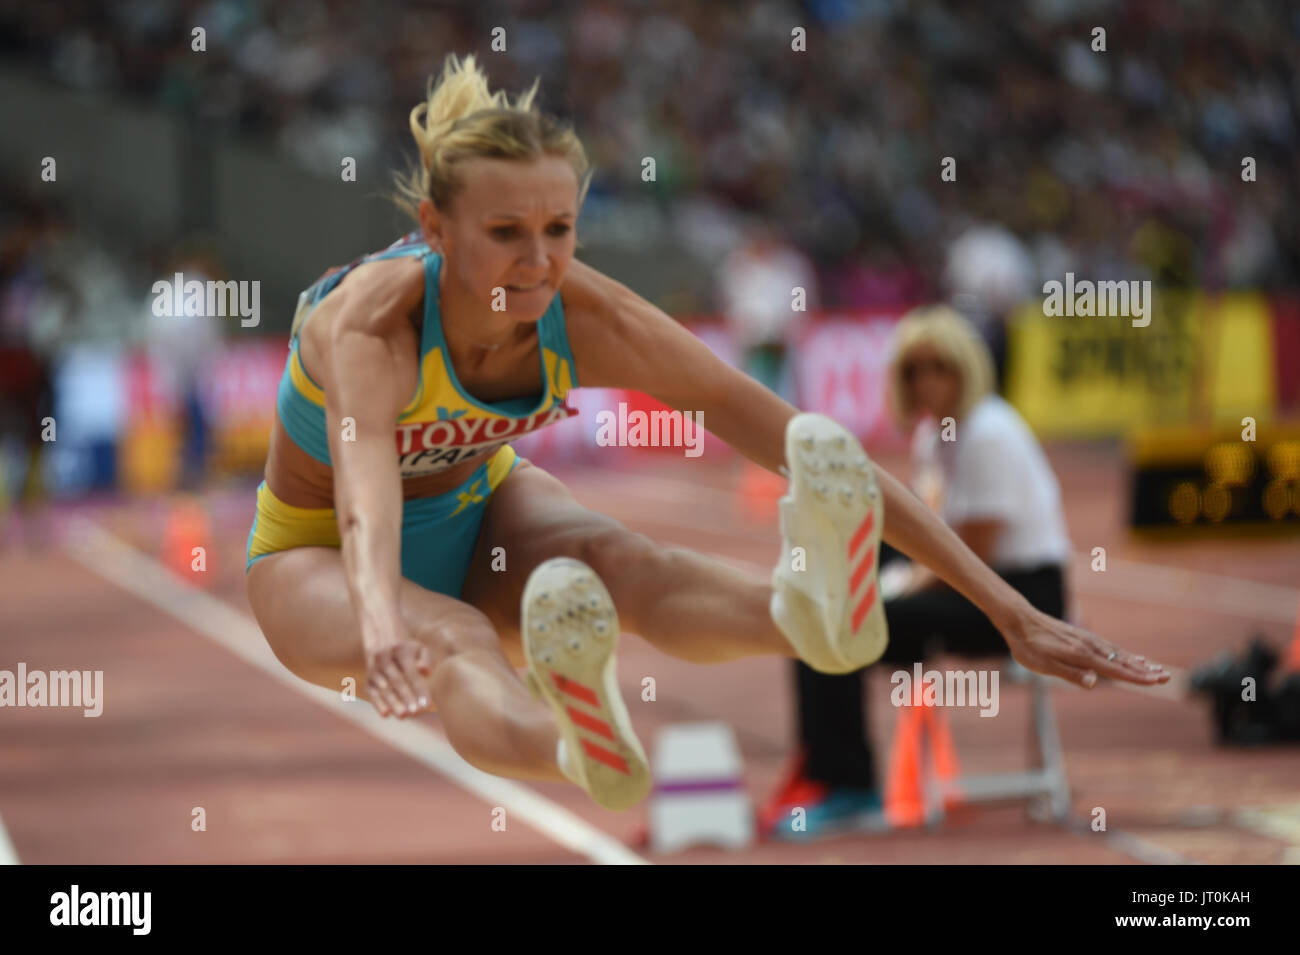 Olga RYPAKOVA, Kazakstan, at triple jump preliminary heat at London Stadium in London on August 5, 2017 at the 2017 - Stock Image